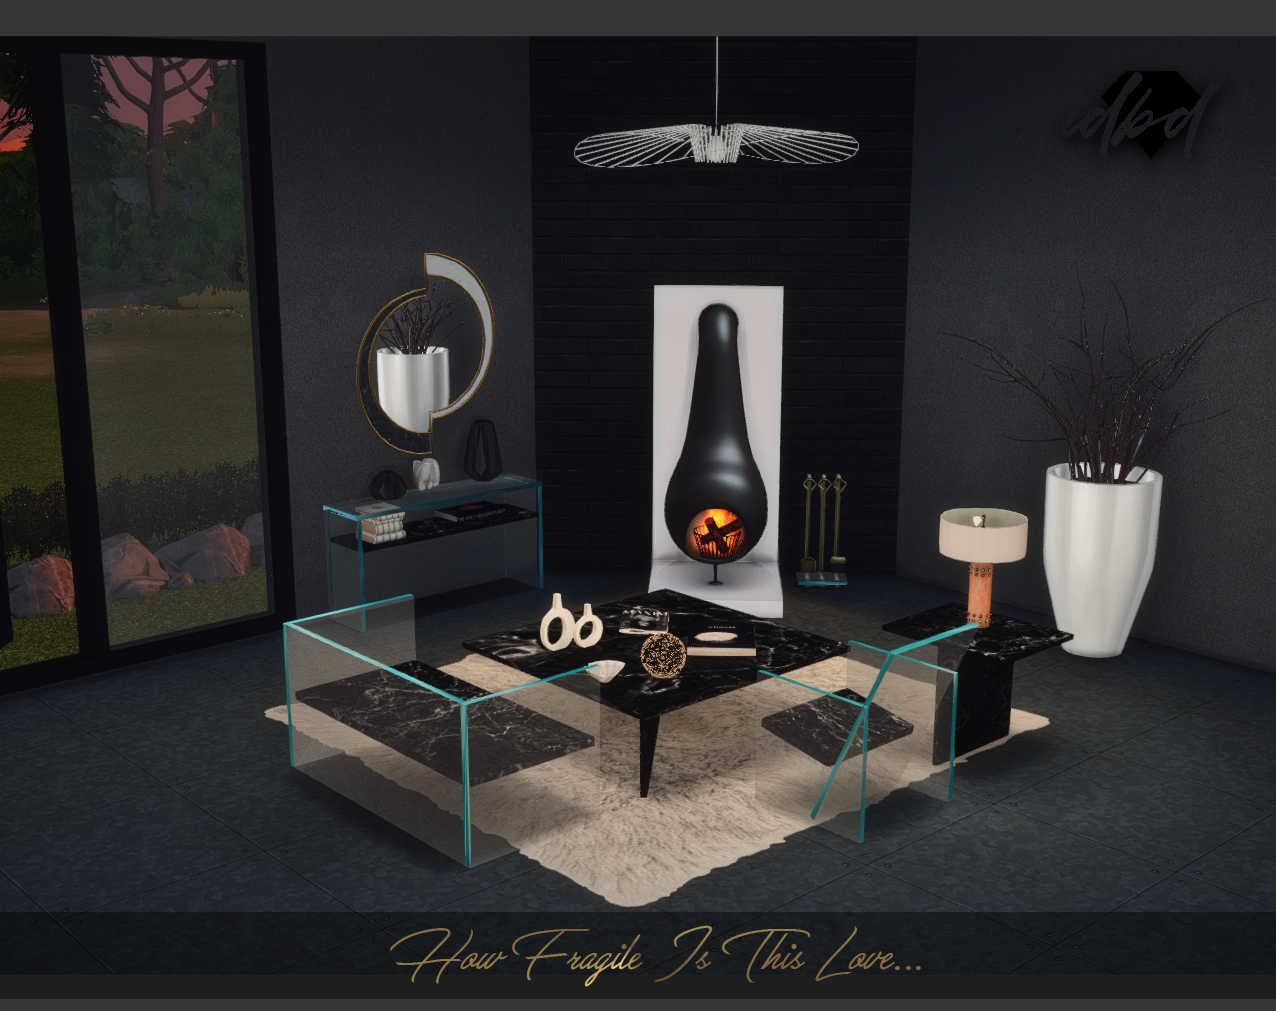 How Fragile Is This Love Set New Meshes Sims 4 Designs Sims Sims 4 Coffee Table Sims 4 Cc Furniture [ 1011 x 1276 Pixel ]